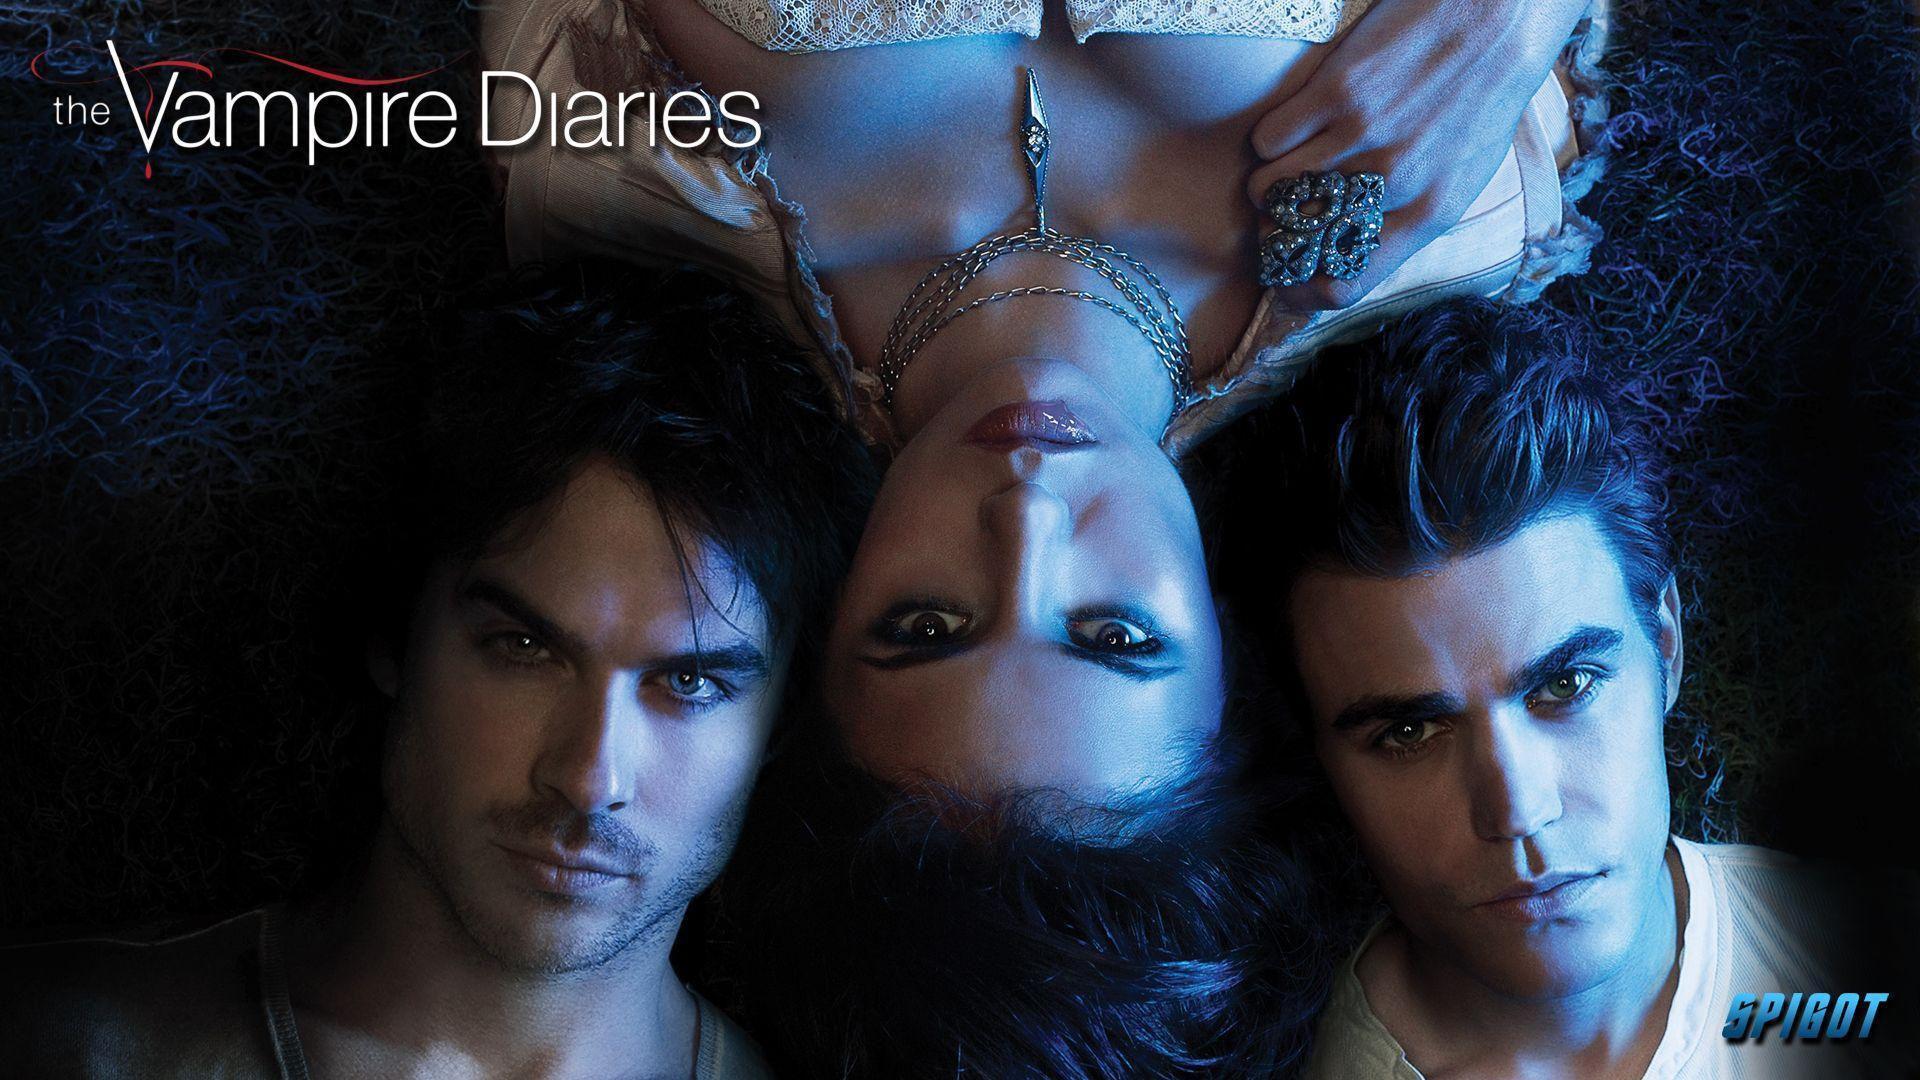 The Last Of The Vampire Diaries Wallpapers | George Spigot's Blog